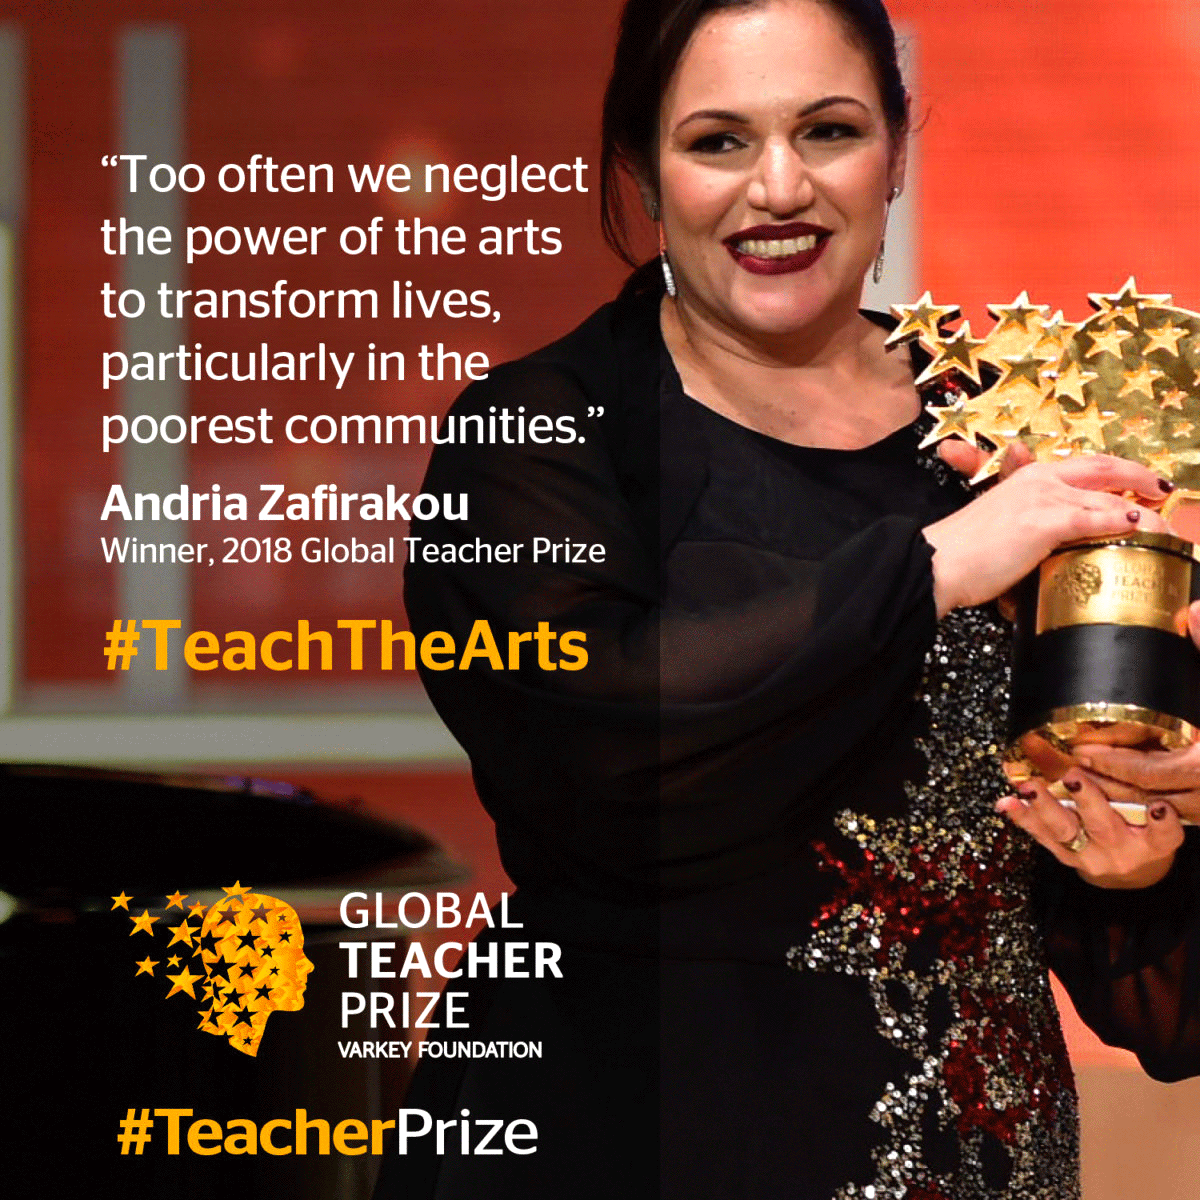 Andria Zafirakou from Alperton Community School in the UK won the 2018 Global Teacher Prize image-credit-The-Varkey-Foundation